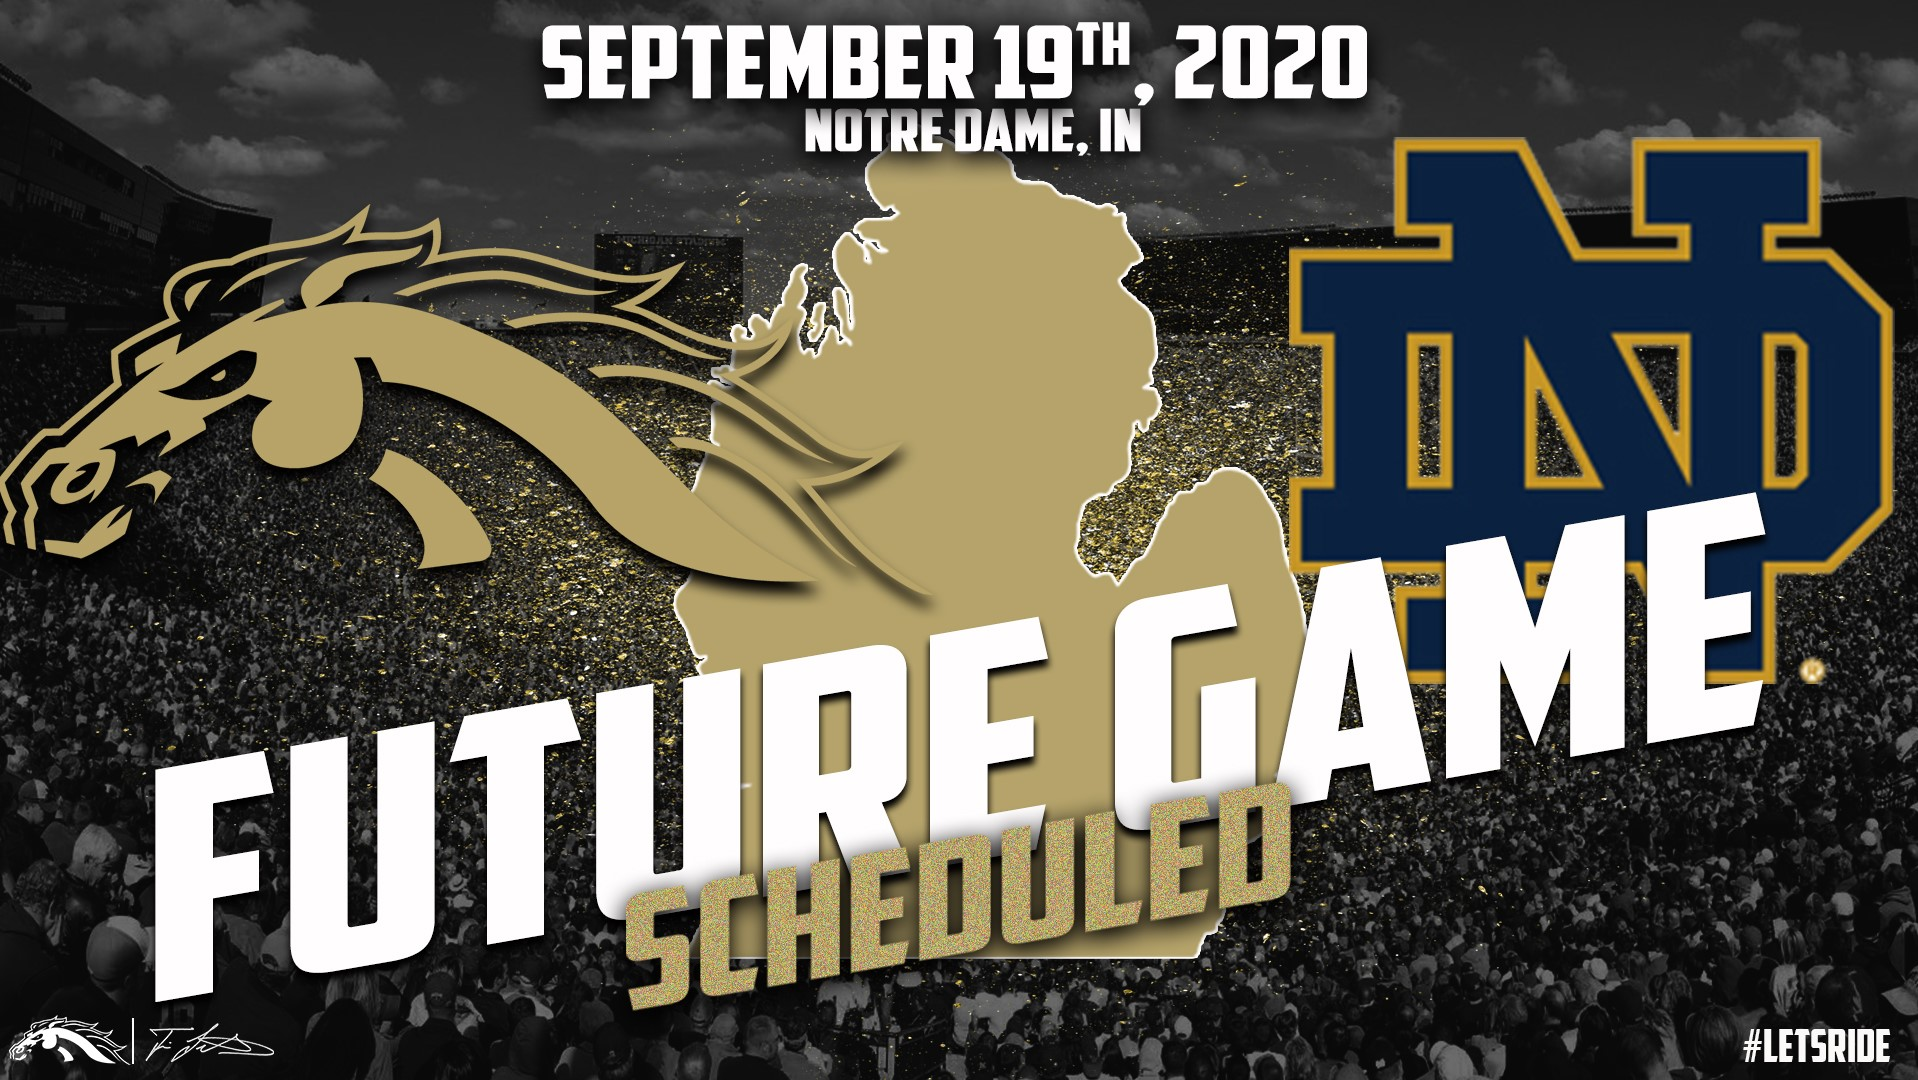 Notre Dame 2020 Football Schedule.Wmu Football Announces 2020 Game At Notre Dame Western